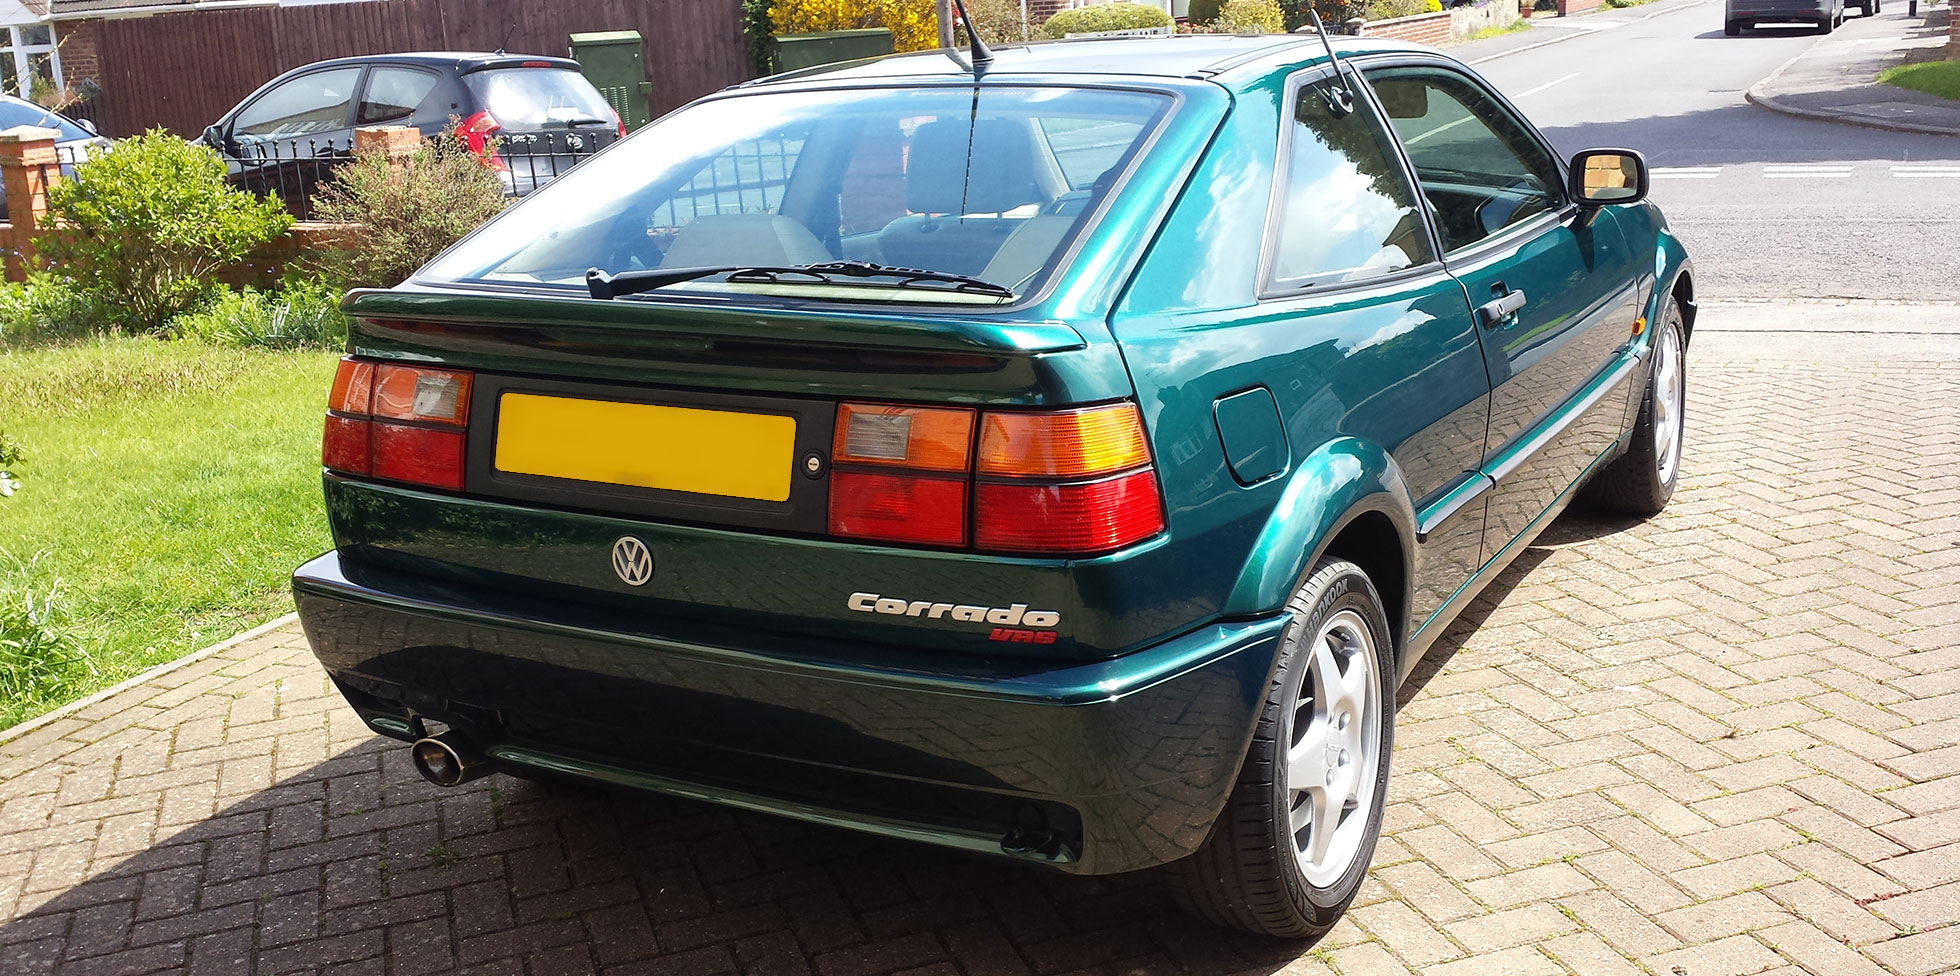 Volkswagen Corrado paint finishing